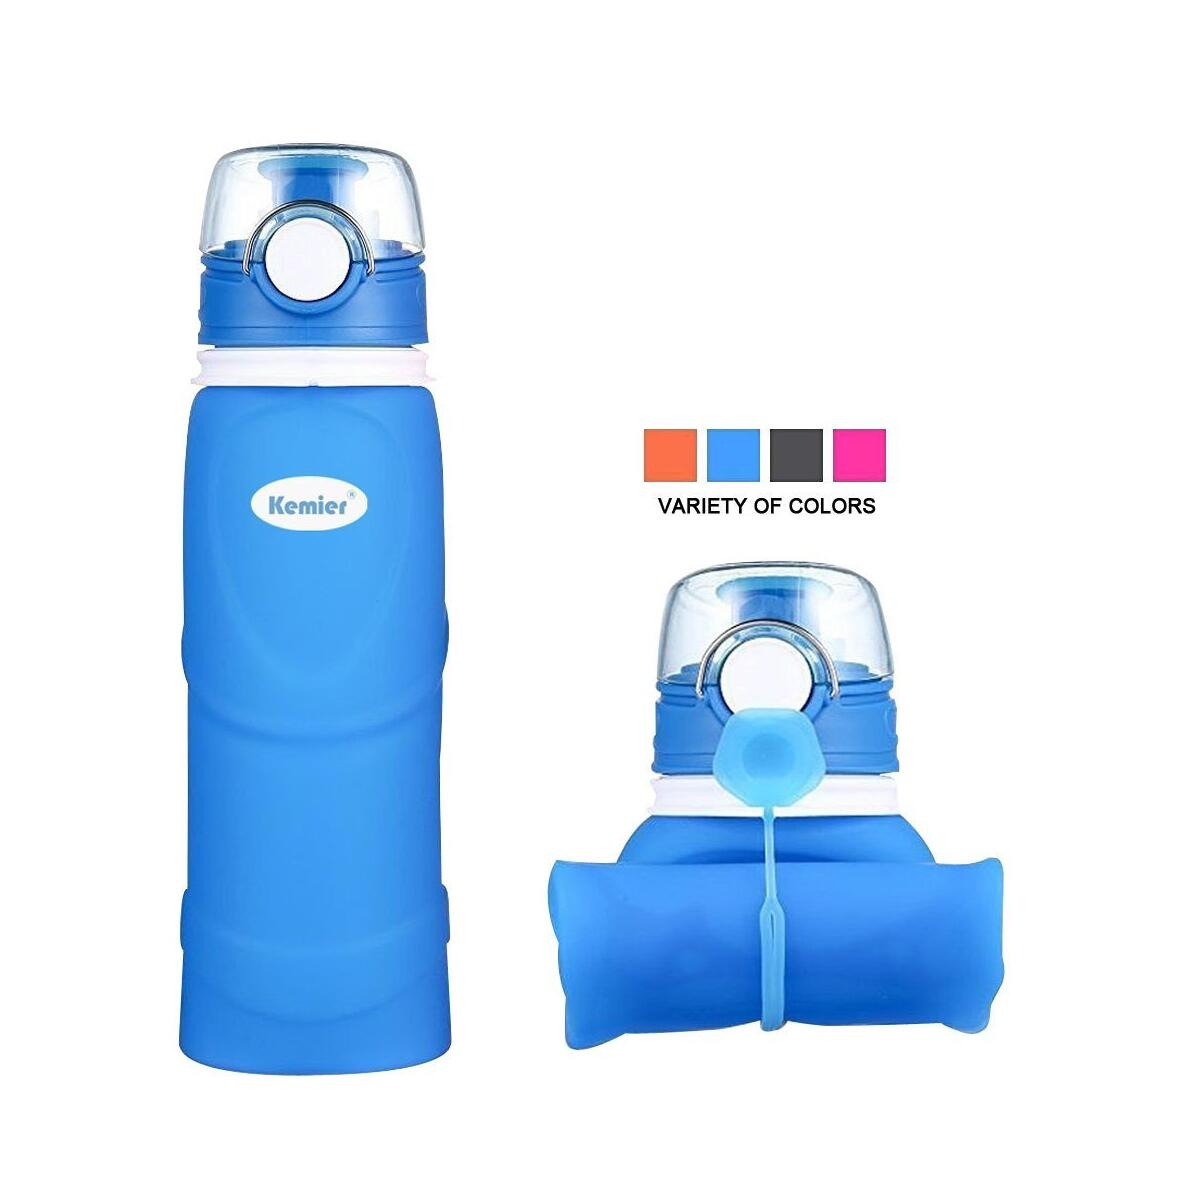 Kemier Collapsible Silicone Water Bottles-750ML,Medical Grade,BPA Free Travel Water Bottle Can Roll Up,26oz,Leak Proof Foldable Sports & Outdoor Water Bottles